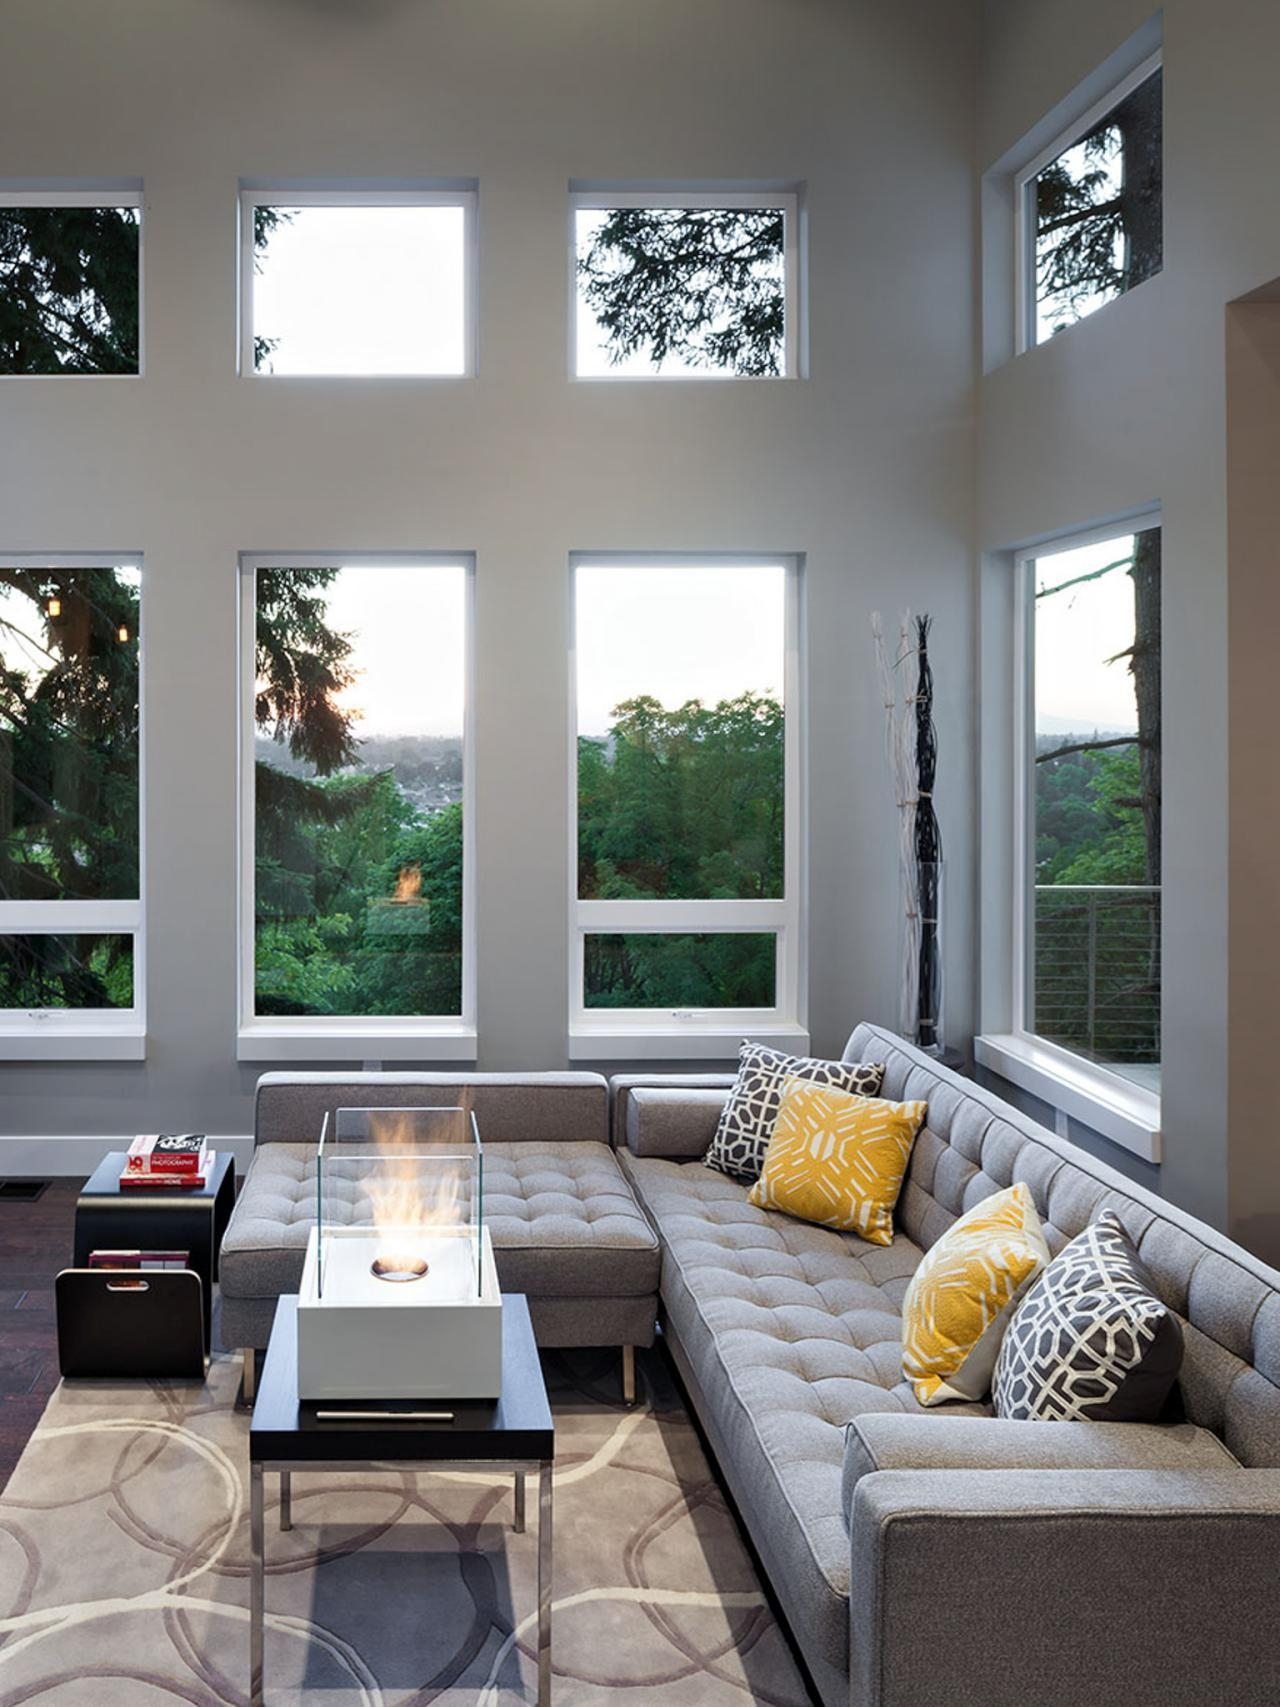 12 Living Room Ideas For A Grey Sectional | Hgtv's Decorating With Gray Sofas For Living Room (View 13 of 20)